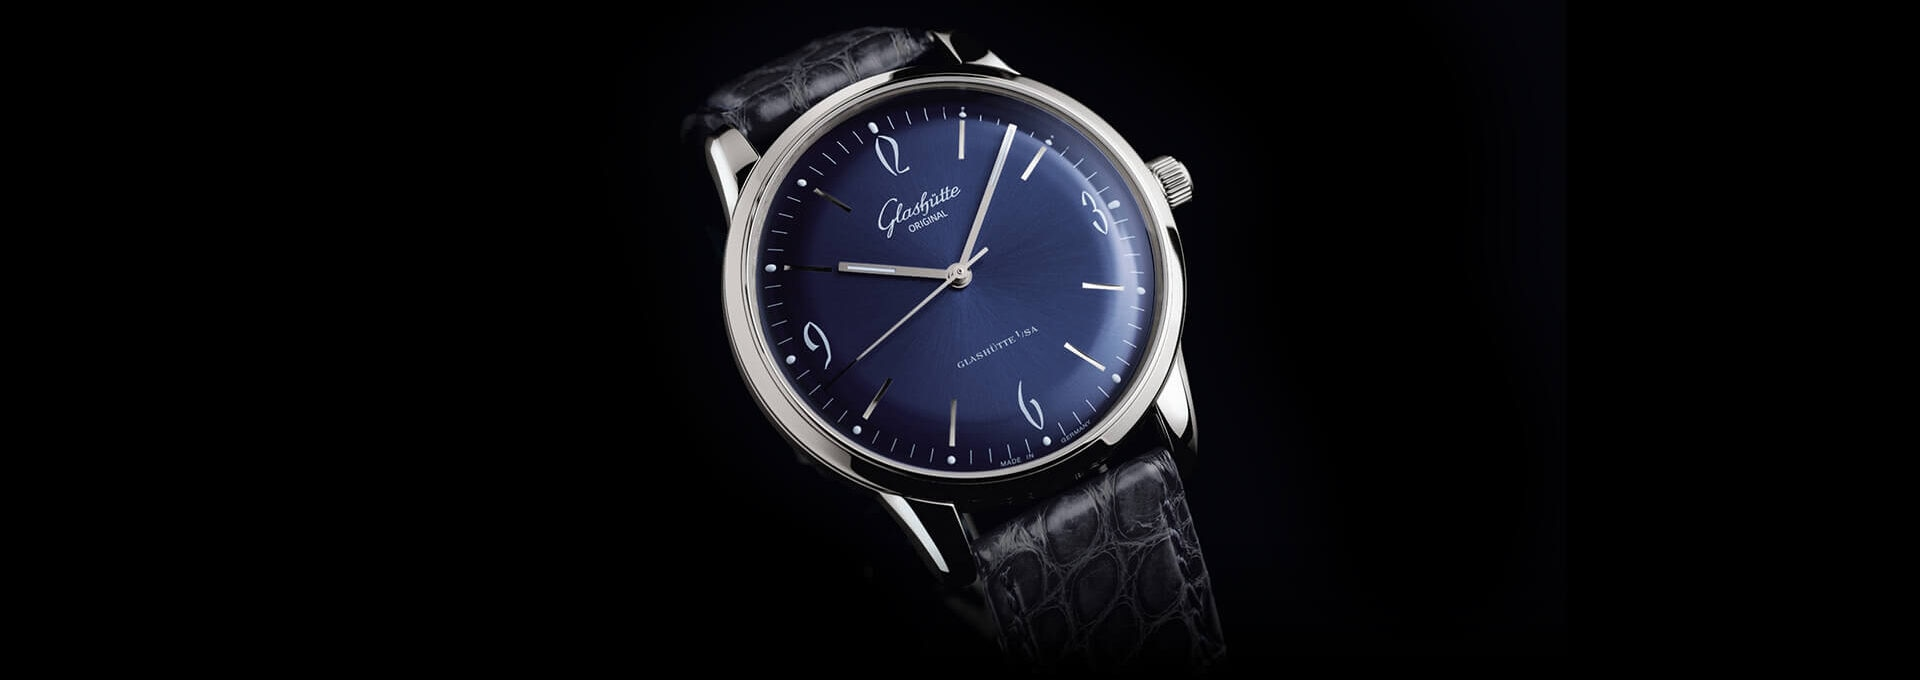 Glashuette_Original-W13952060204-Detail-3